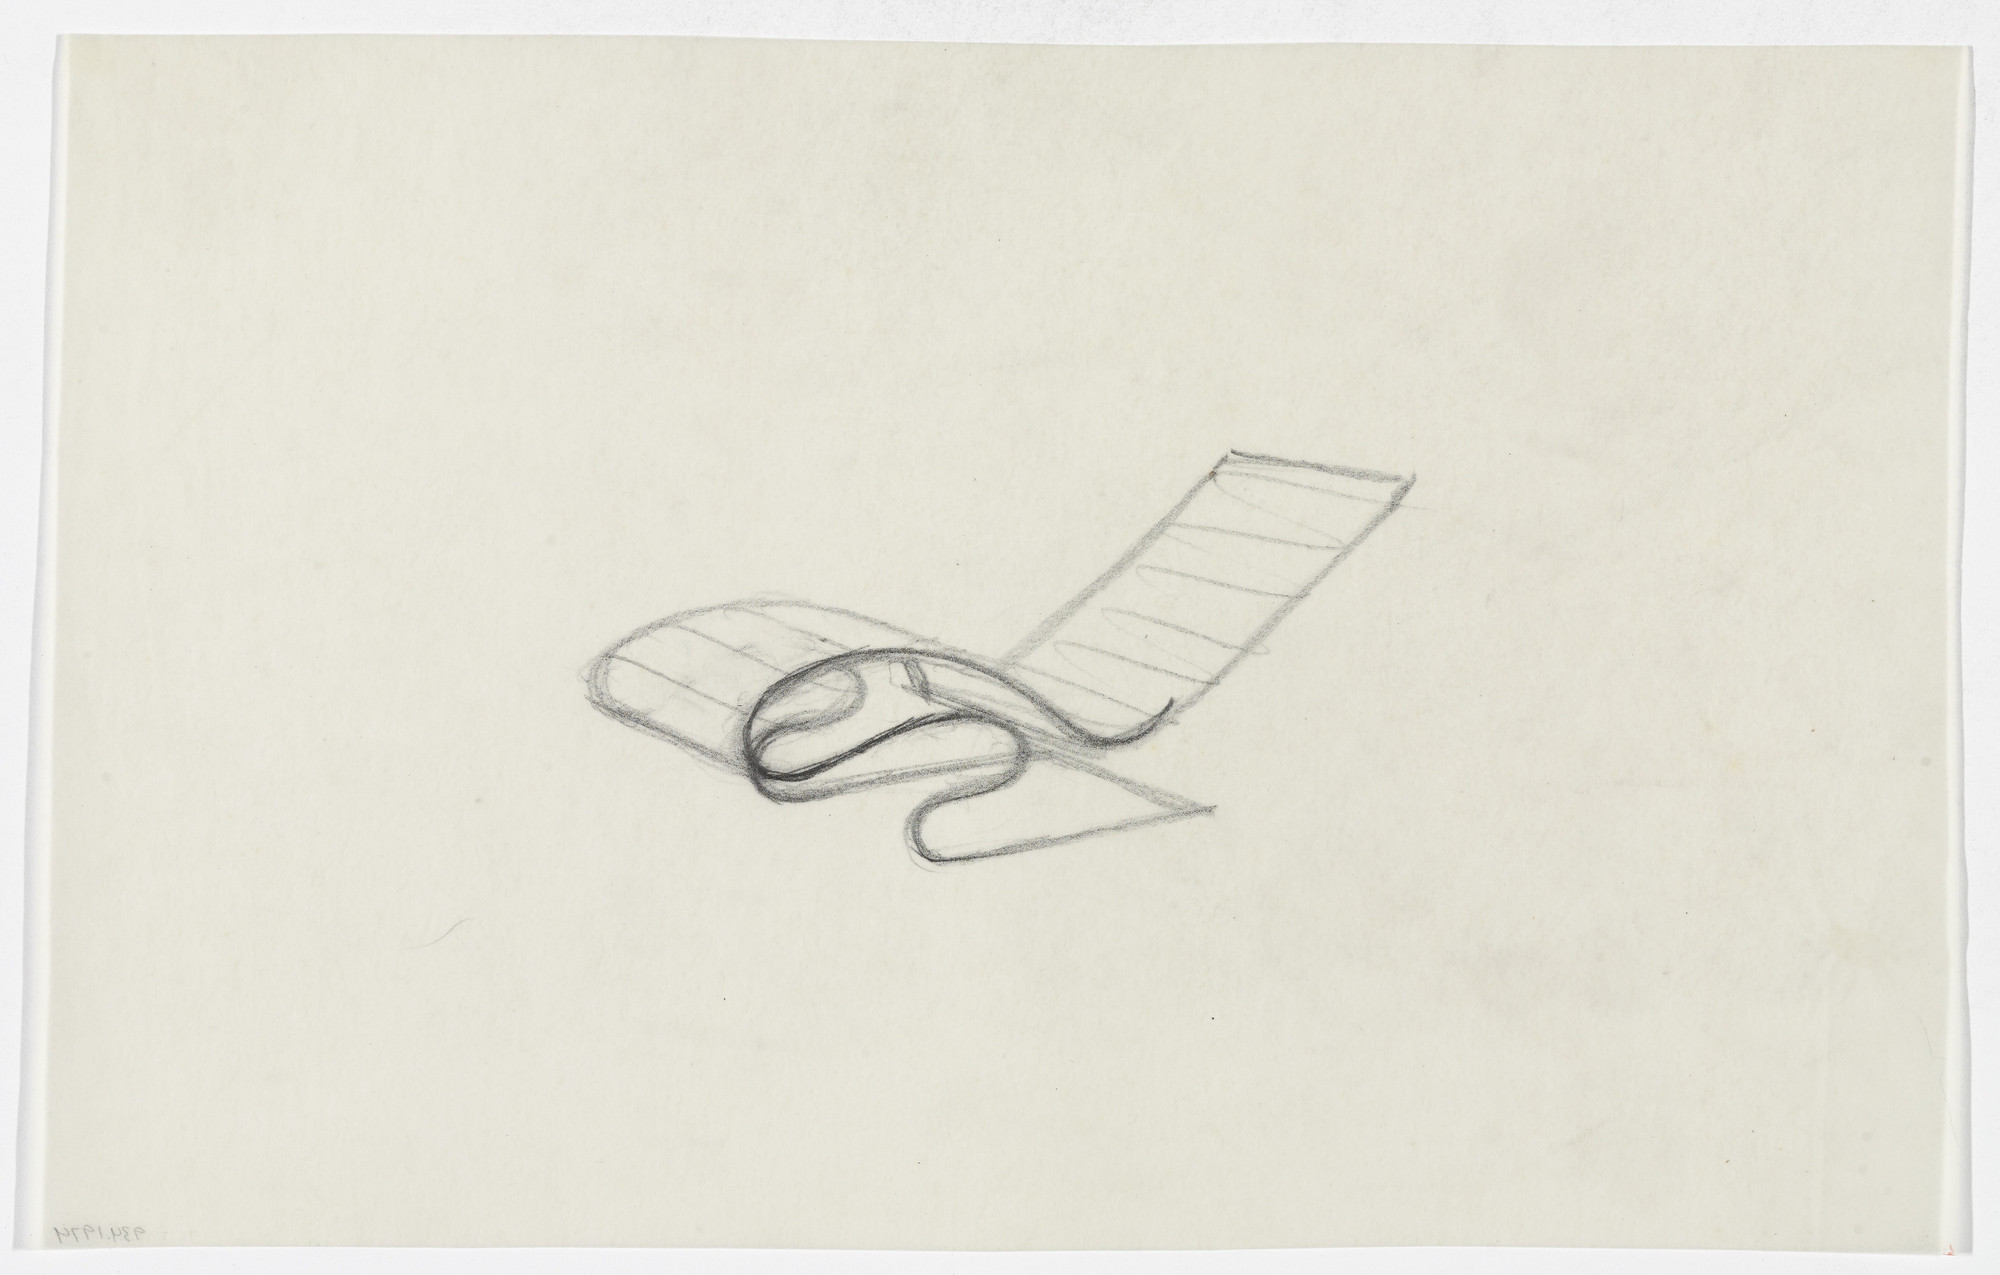 Ludwig Mies van der Rohe. Reclining Chair without Arms (Perspective sketch). early 1930s